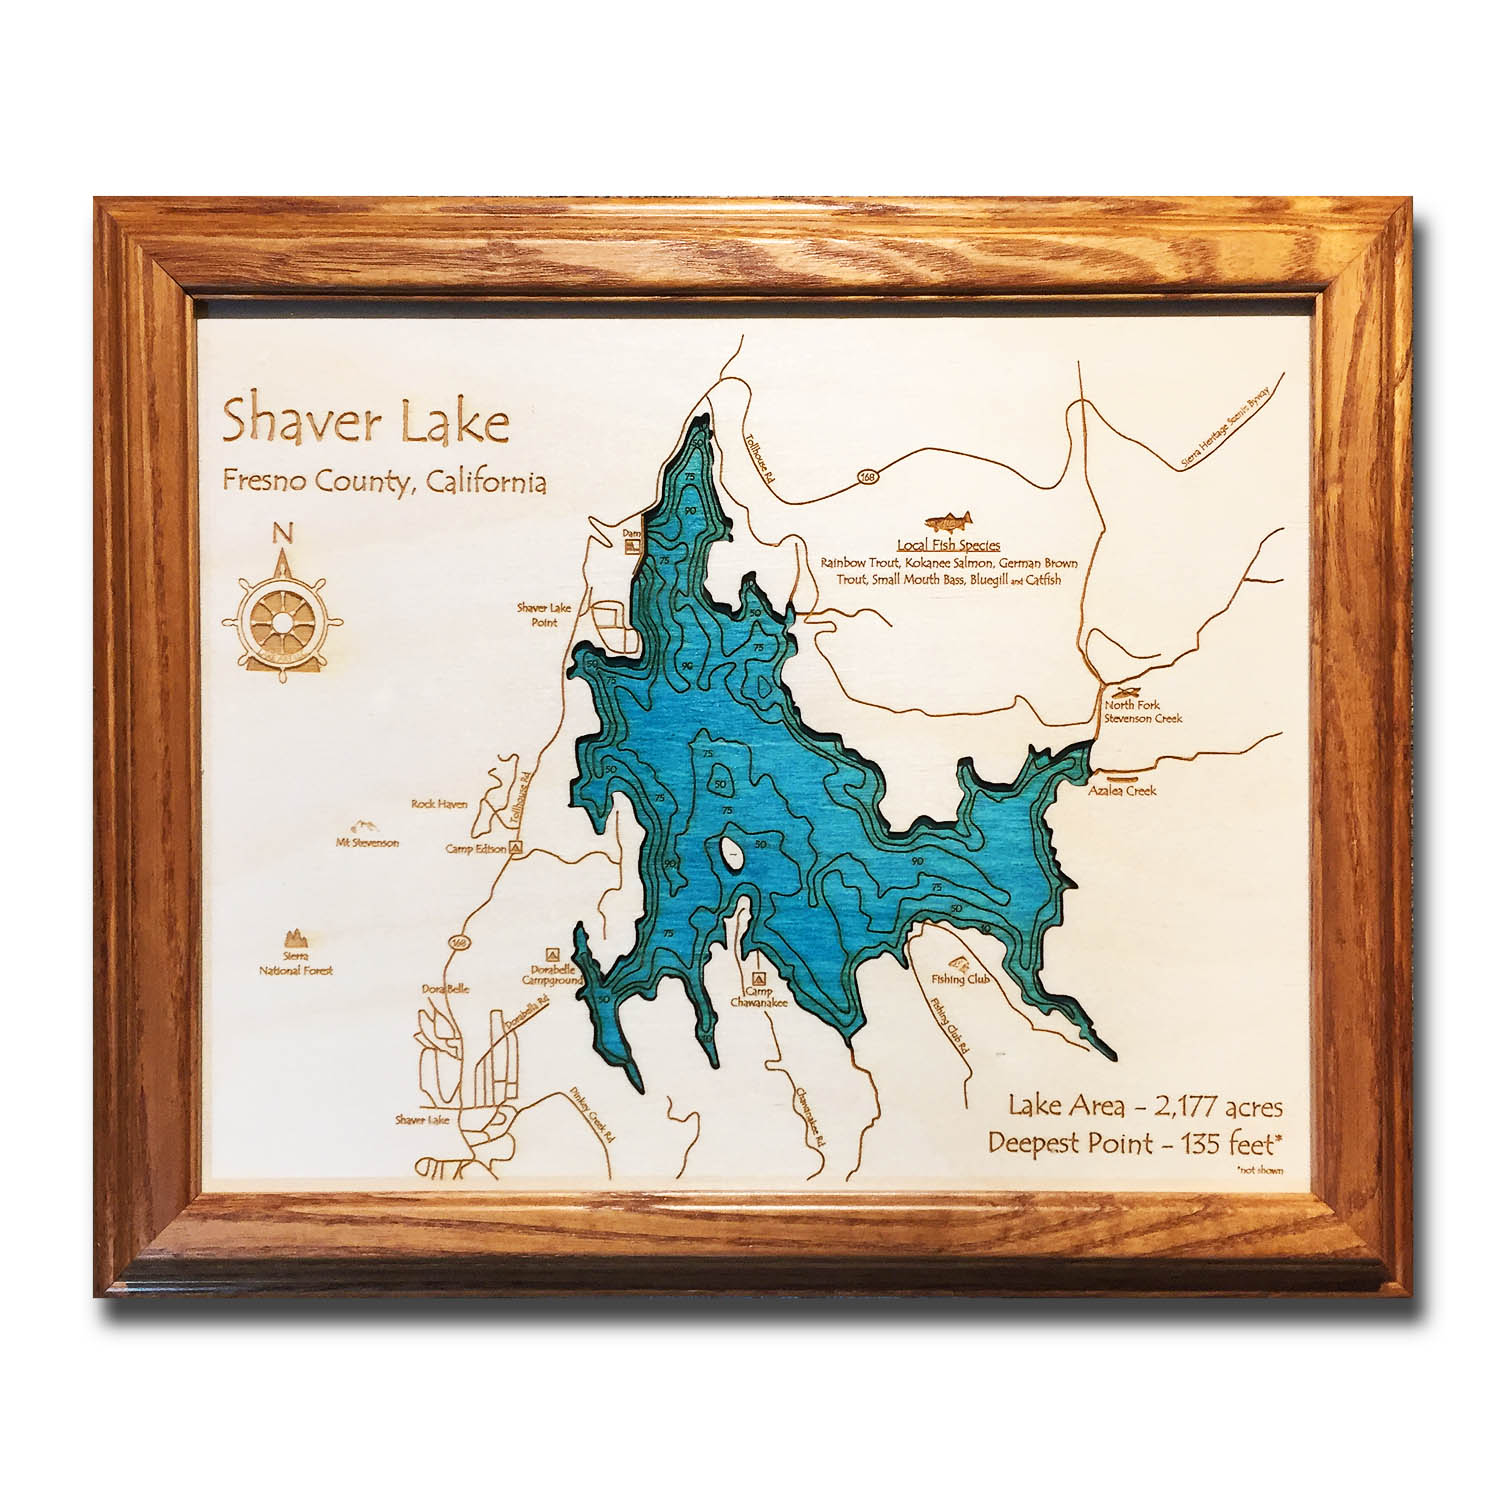 Shaver Lake California laser-etched wood map, laser-printed poster wall art